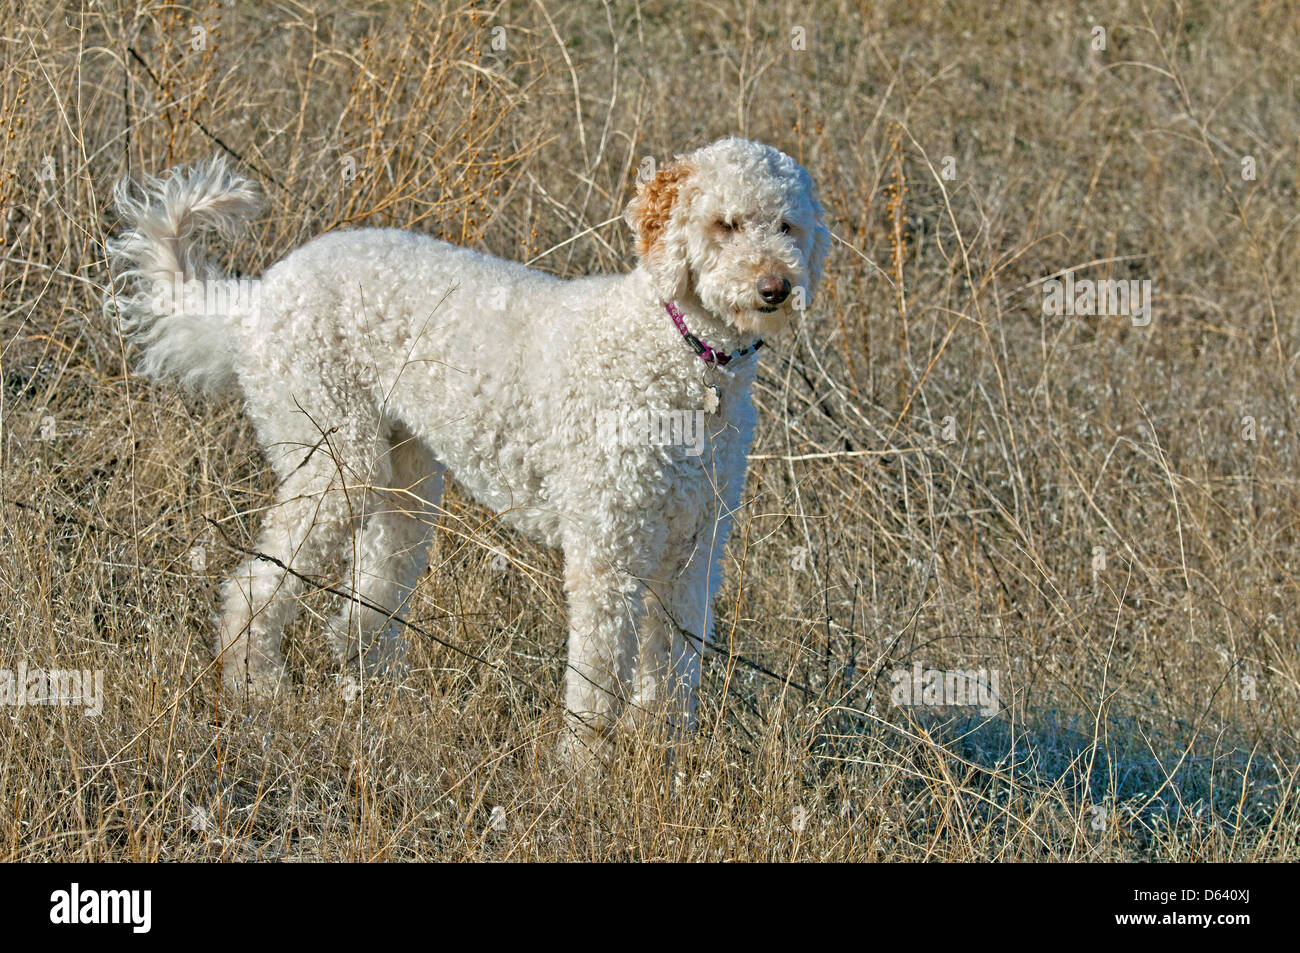 Goldendoodle (cross between a golden retriever and a standard poodle) - Stock Image